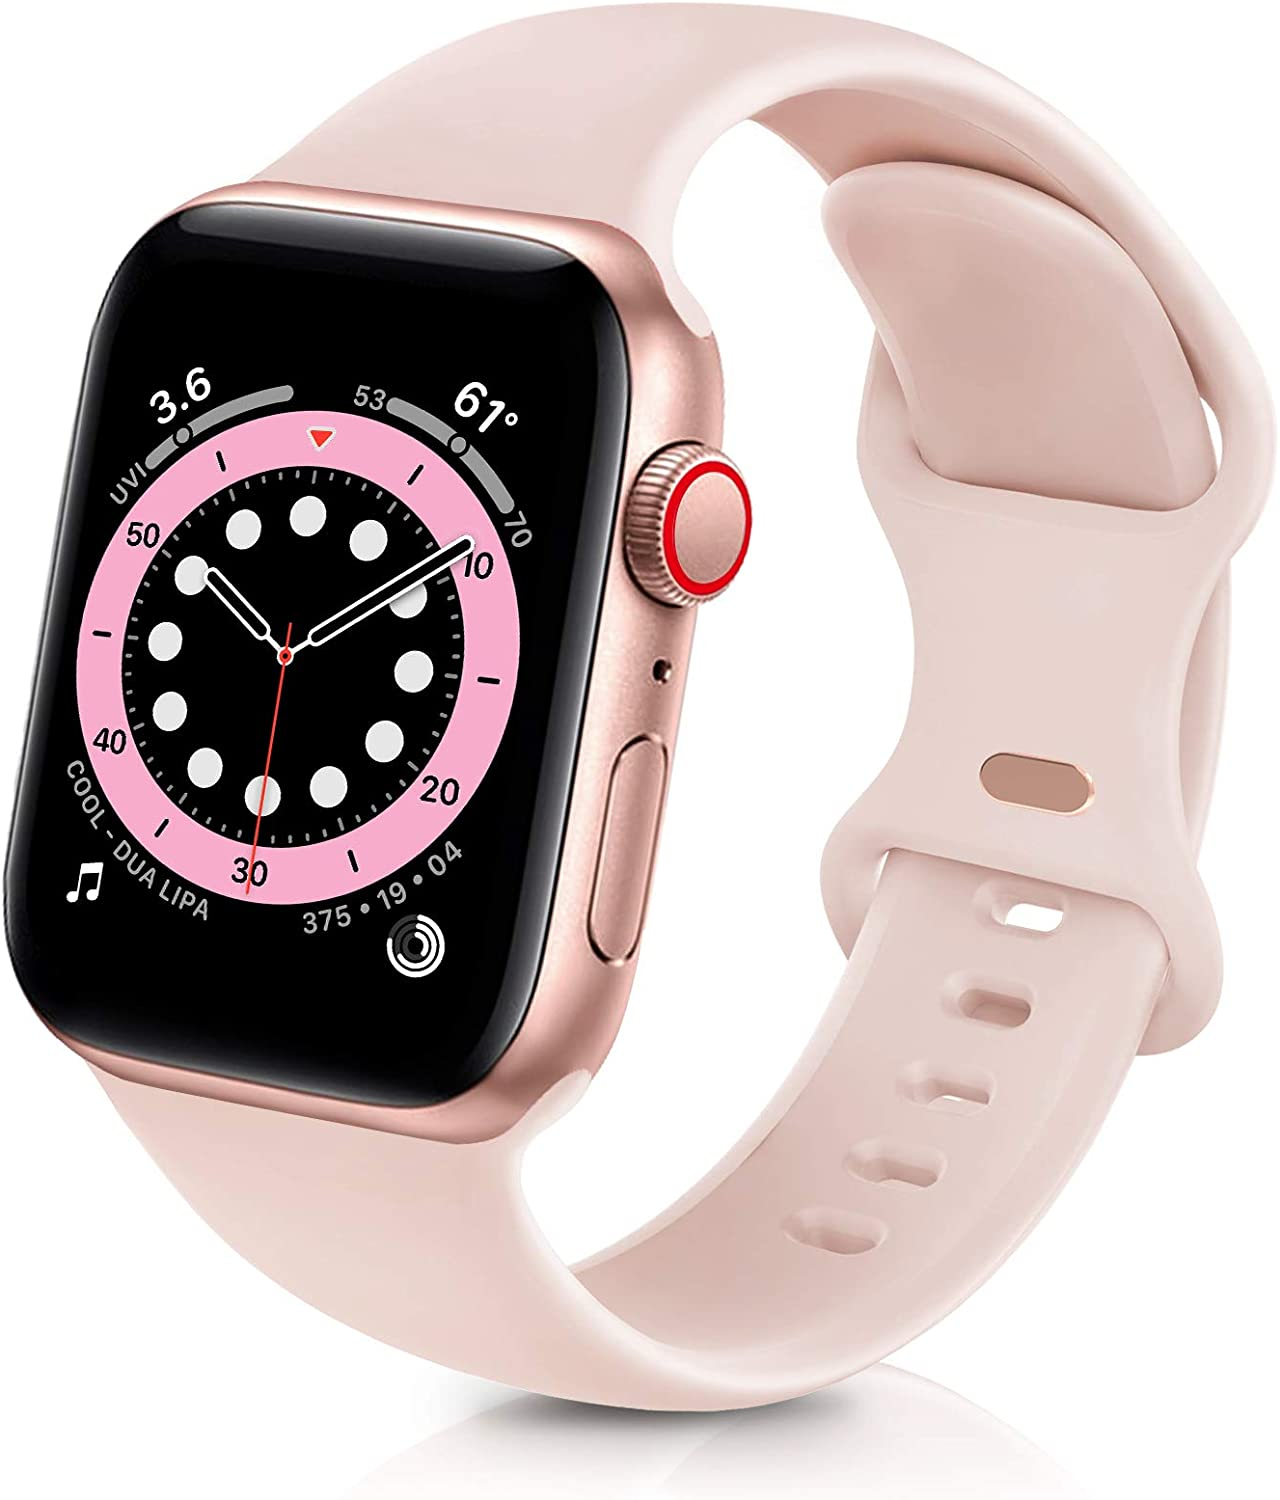 ZALAVER Bands Compatible with Apple Watch Band 38mm 40mm, Soft Silicone Sport Replacement Band Compatible with iWatch Series 6 5 4 3 2 1 Women Men Sand Pink 38mm/40mm S/M